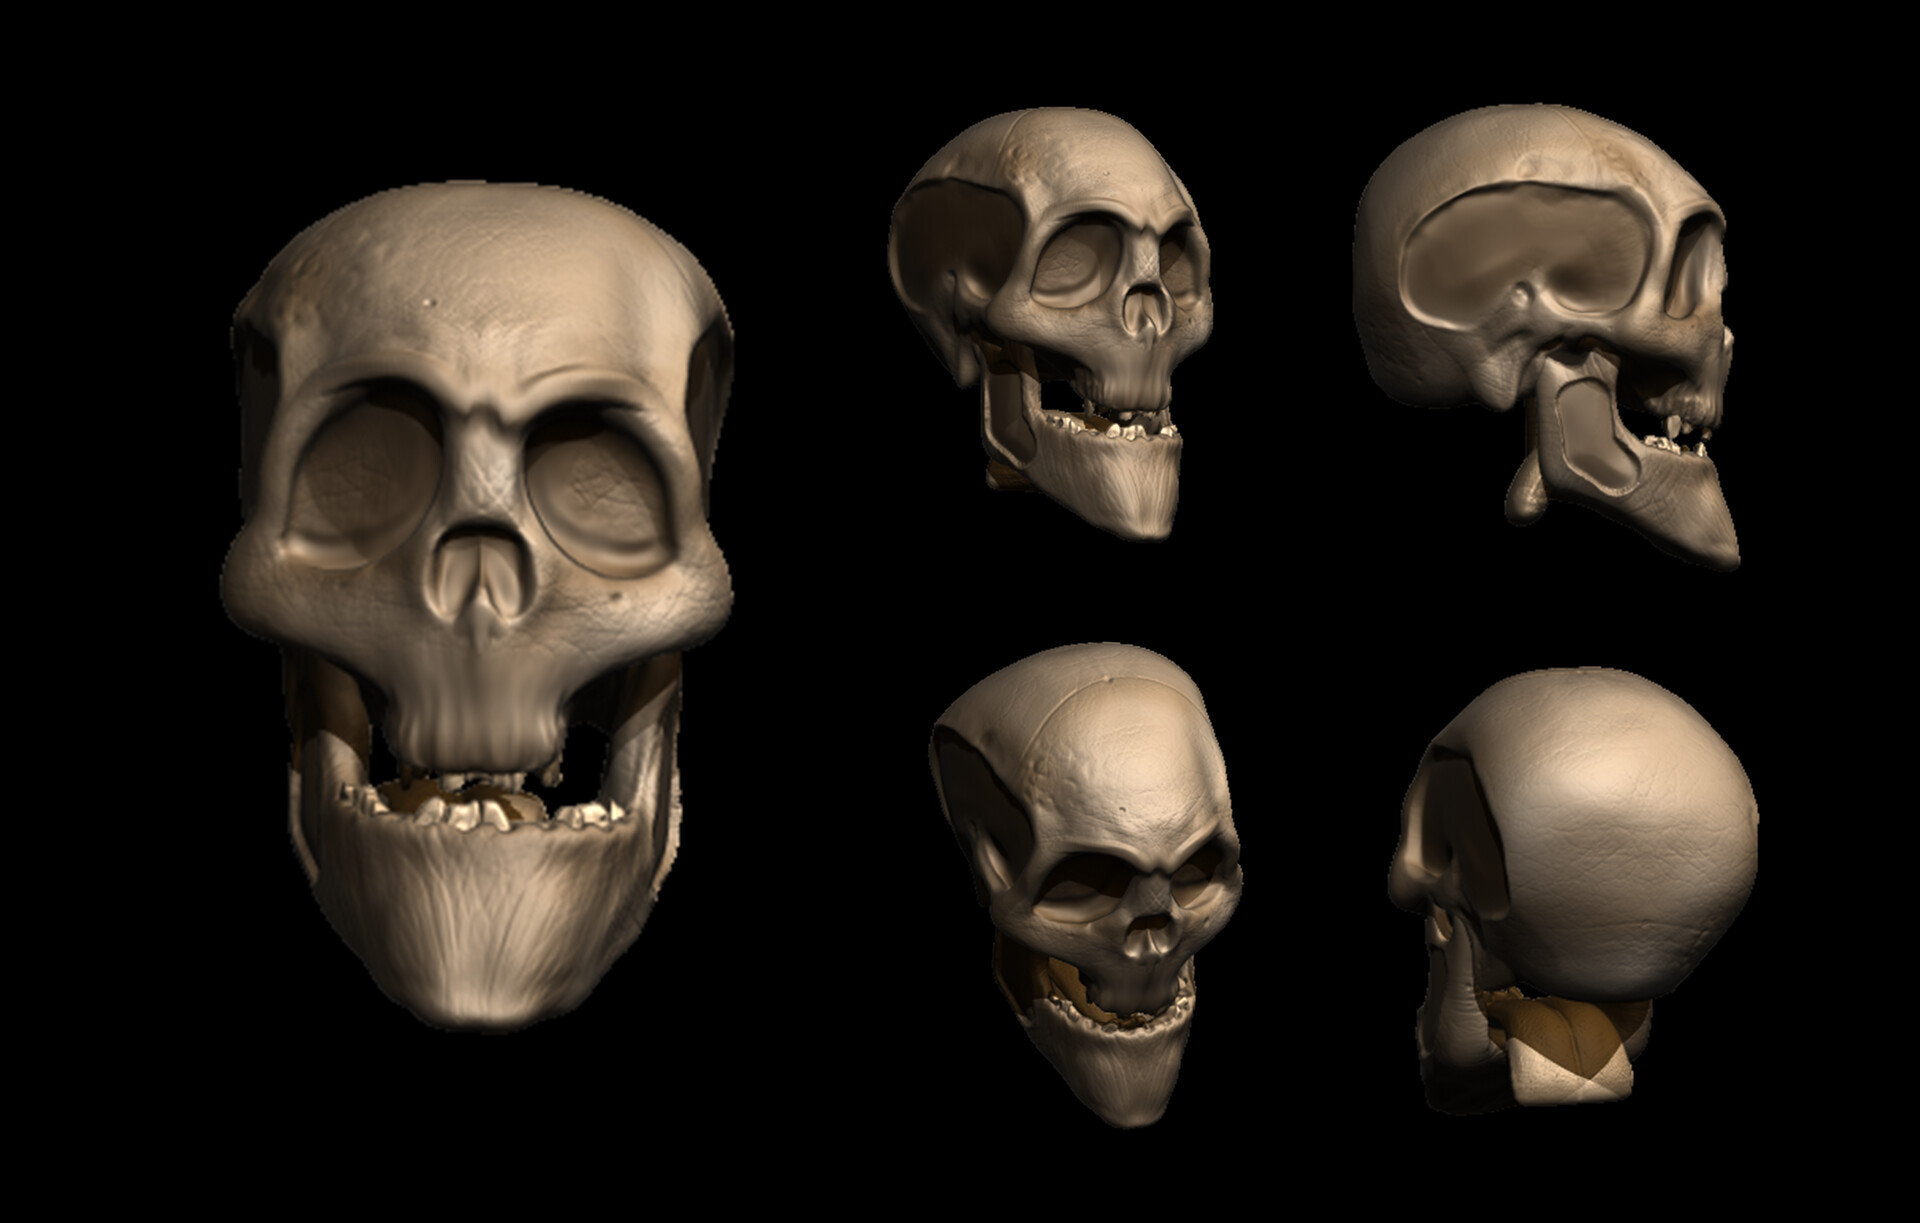 Stylised human skull with textures